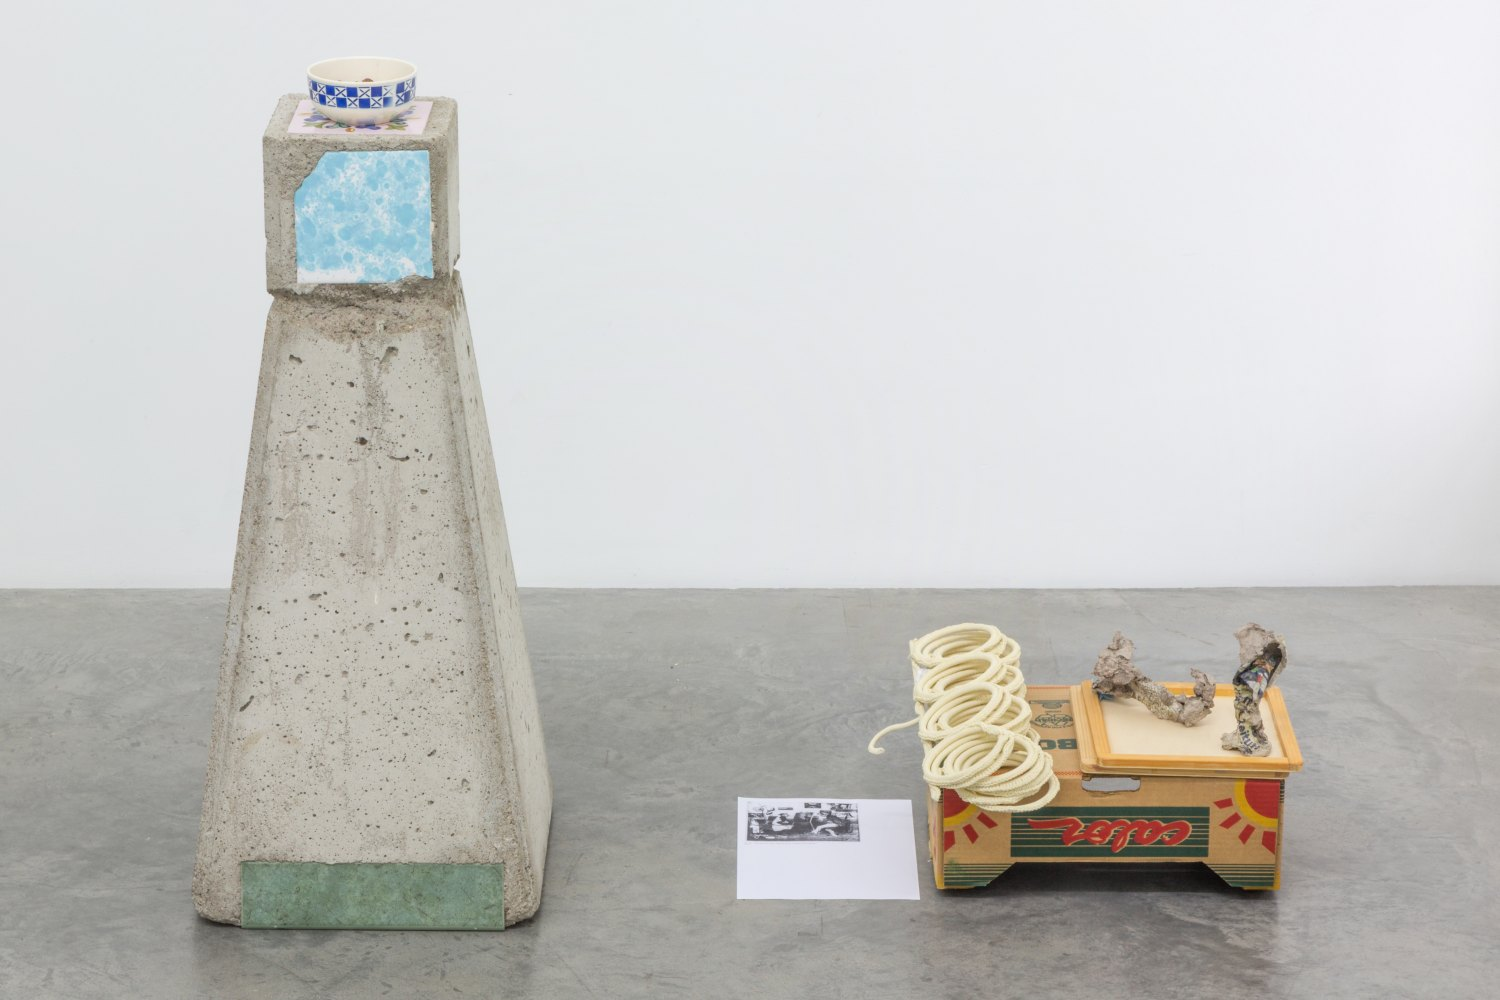 Manfred Pernice mit Martin Städeli Abbruch (d. Bez.), 2005-2015    Concrete, tiles, one bowl, snack mix, cardboard case, 1 bottle holder, 2 jigsaw puzzle borders, 2 papier-mache objects, 1 synthetic butterfly, 1 paper copy,  97 × 125 × 47 cm, dimensions variabel